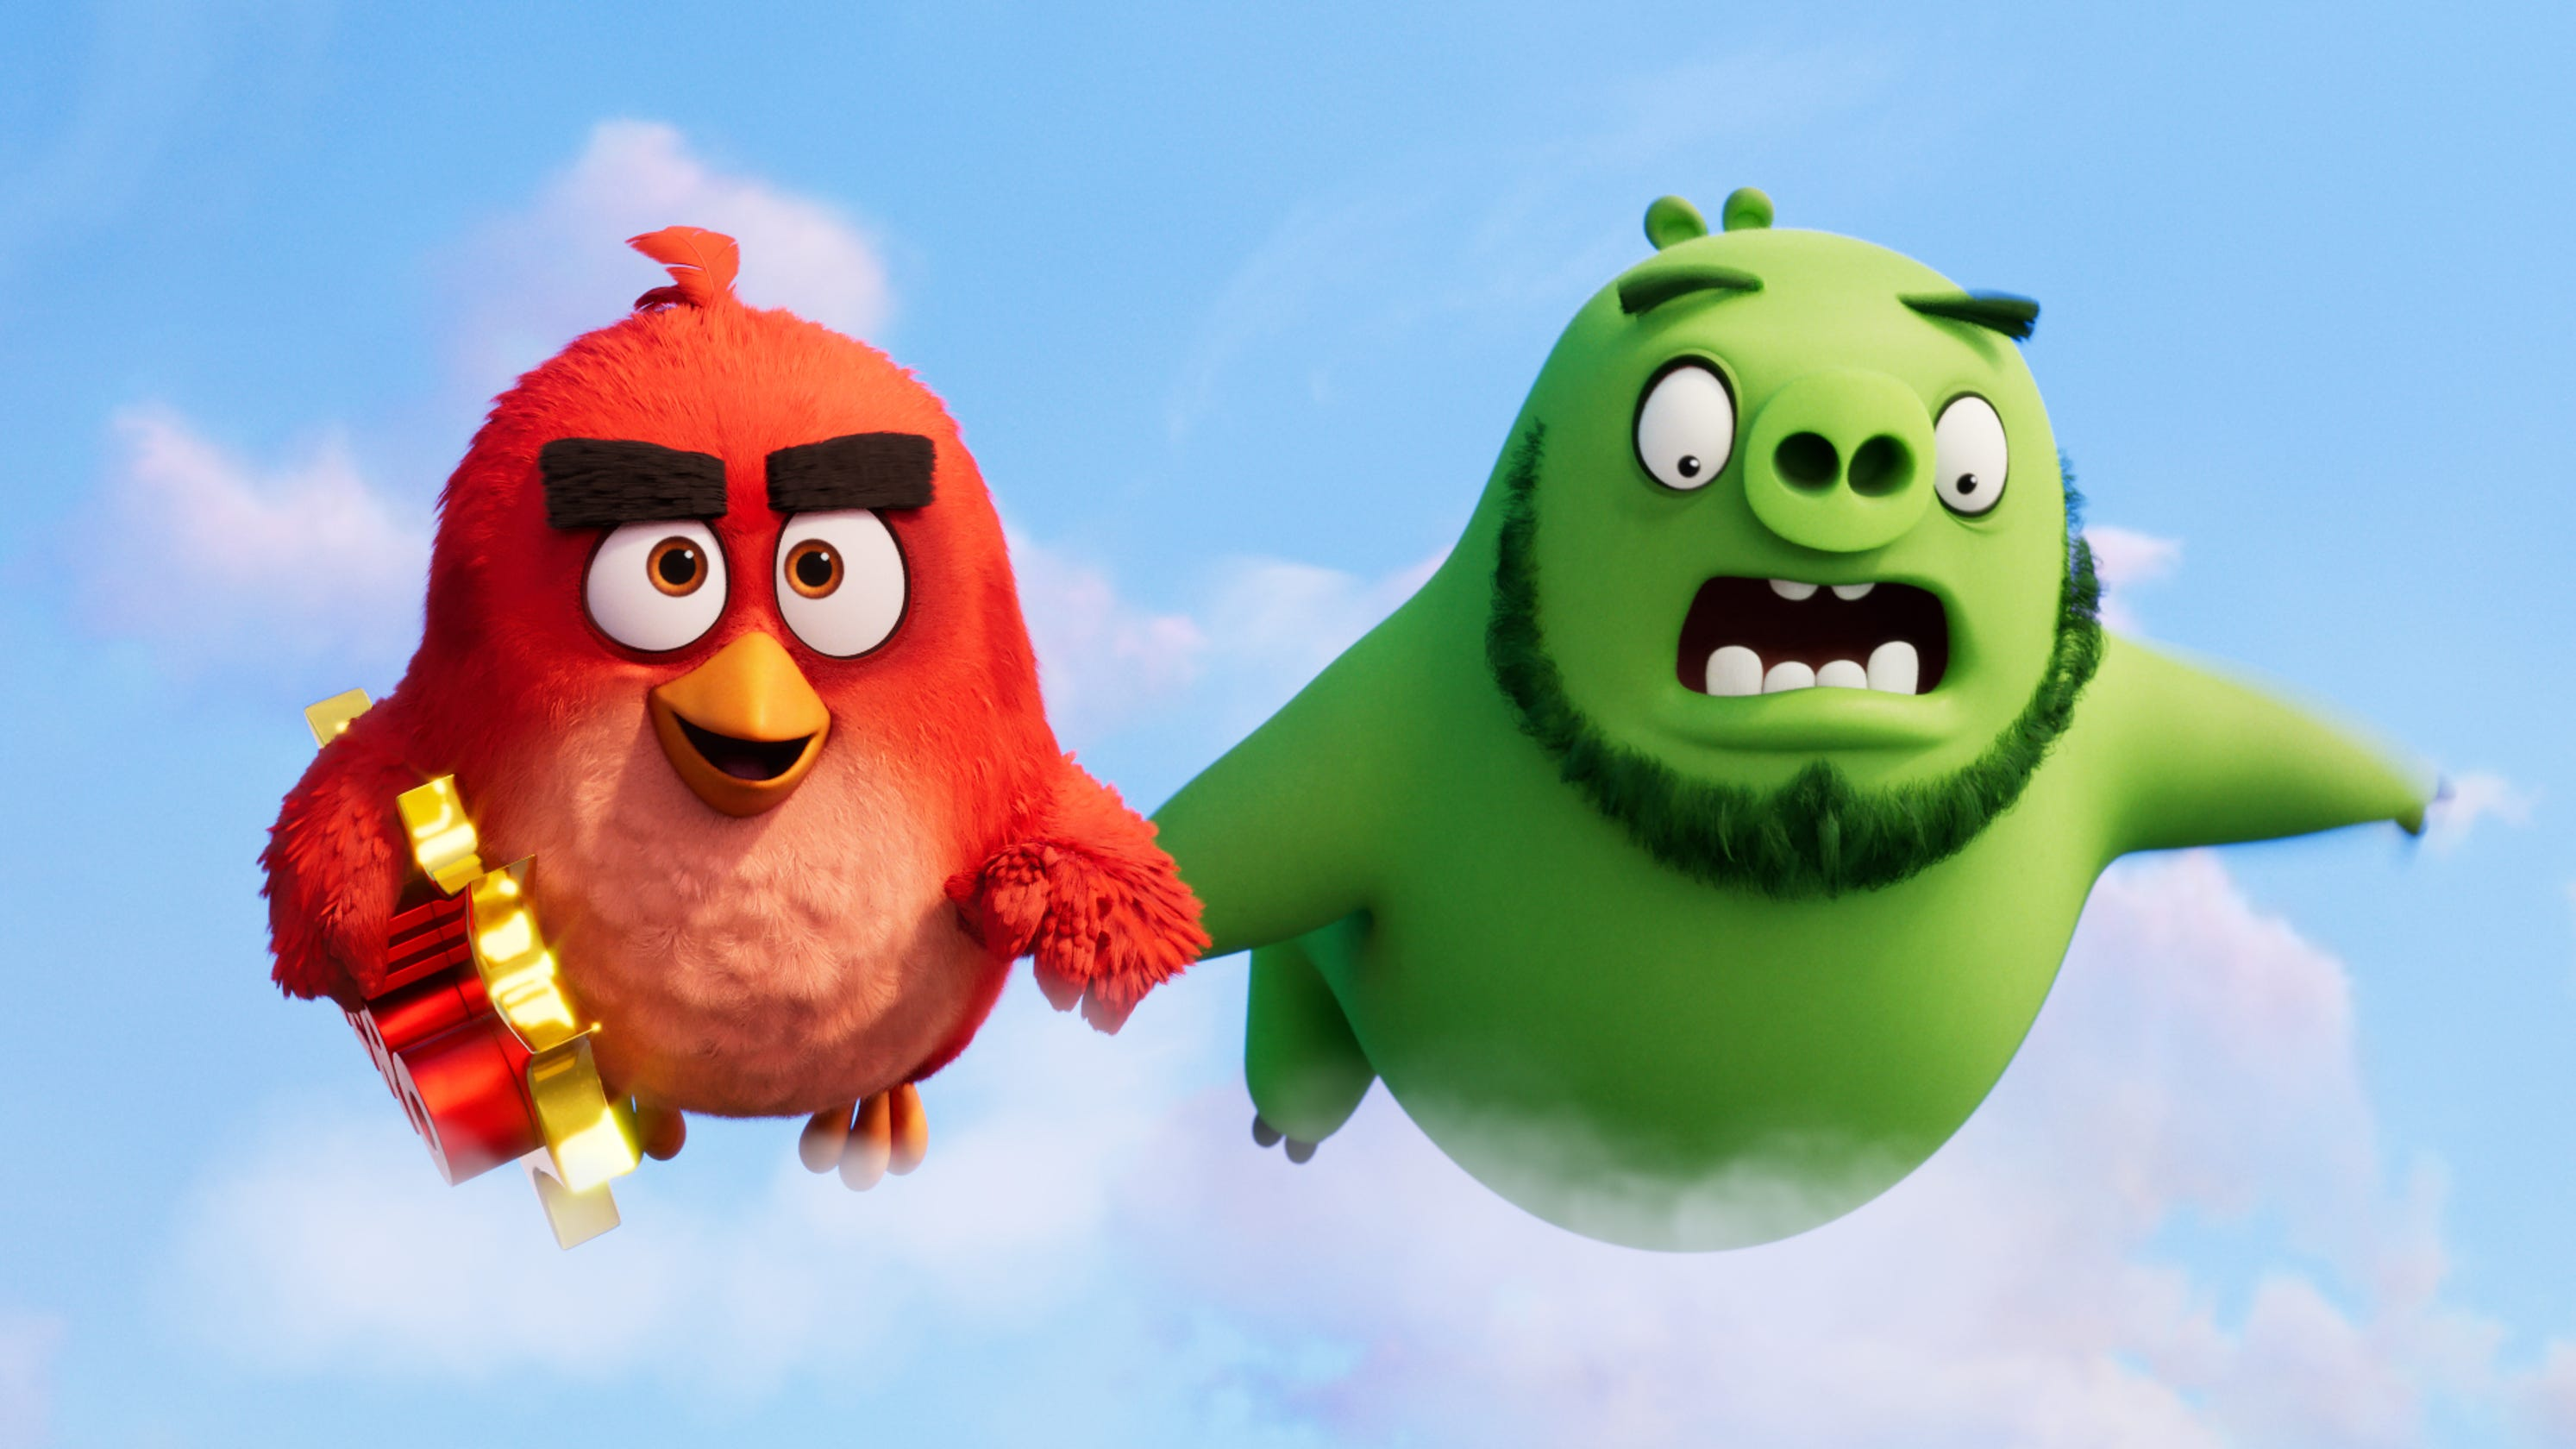 Angry Birds 2 Critics Are Actually Digging The Animated Sequel